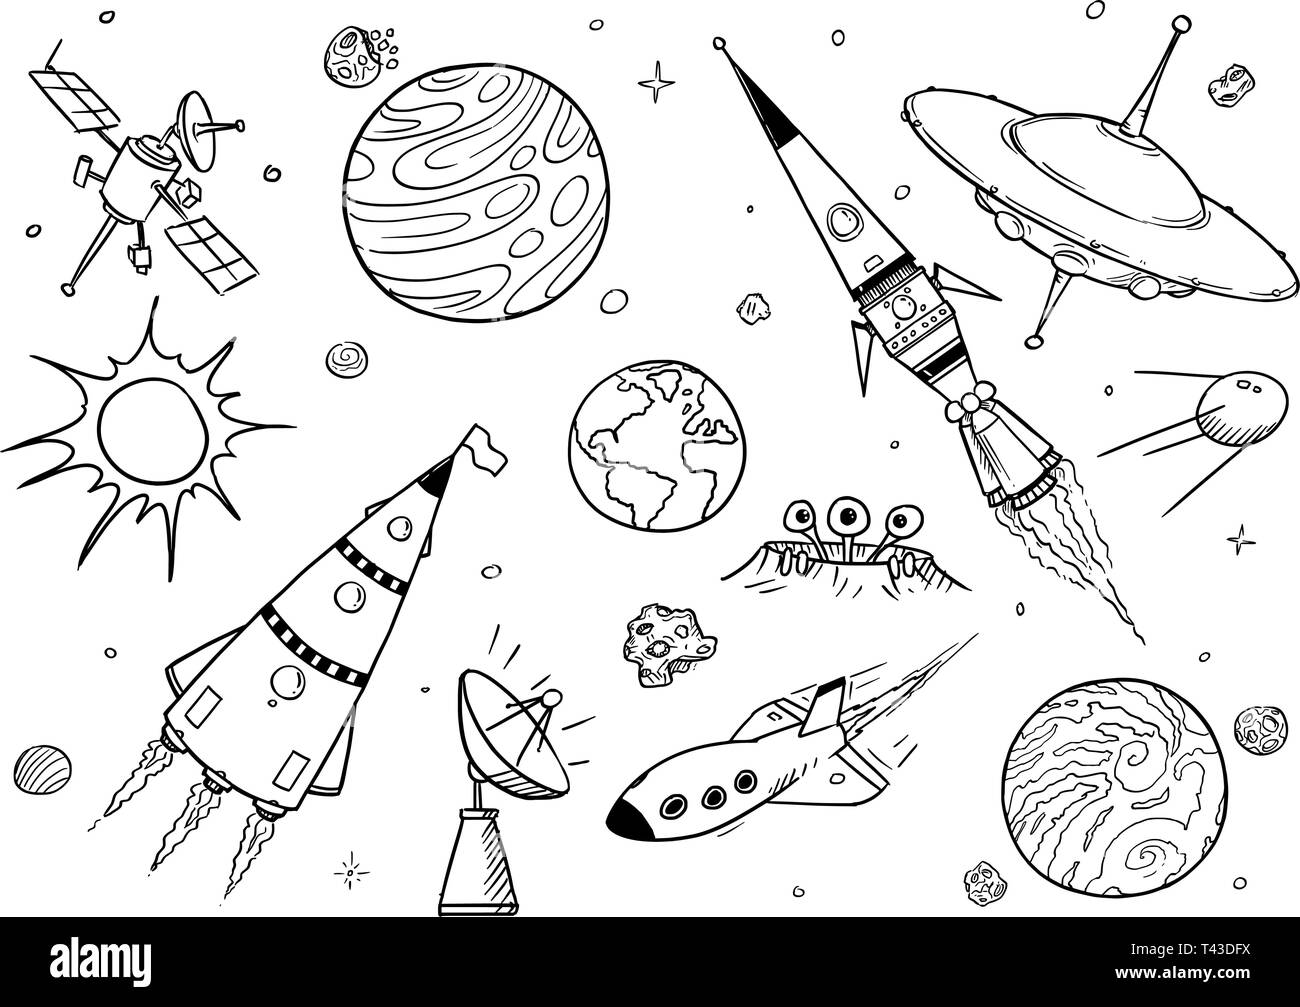 Set of cartoon vector drawings of space props like rockets alien space ships or spaceships ufo planets and satellites